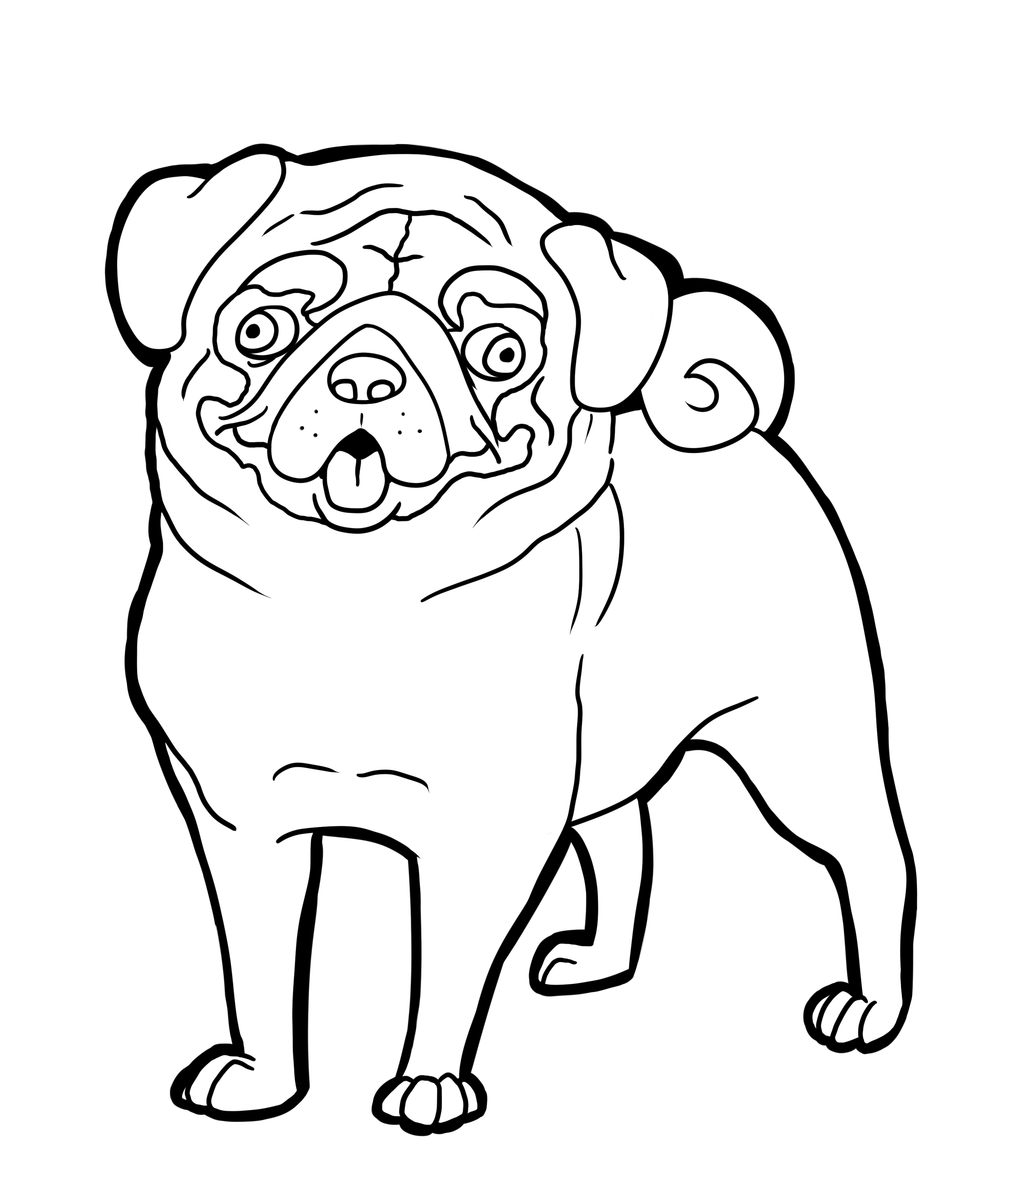 dogs pictures to color employ dog coloring pages for your childrens creative time to dogs pictures color